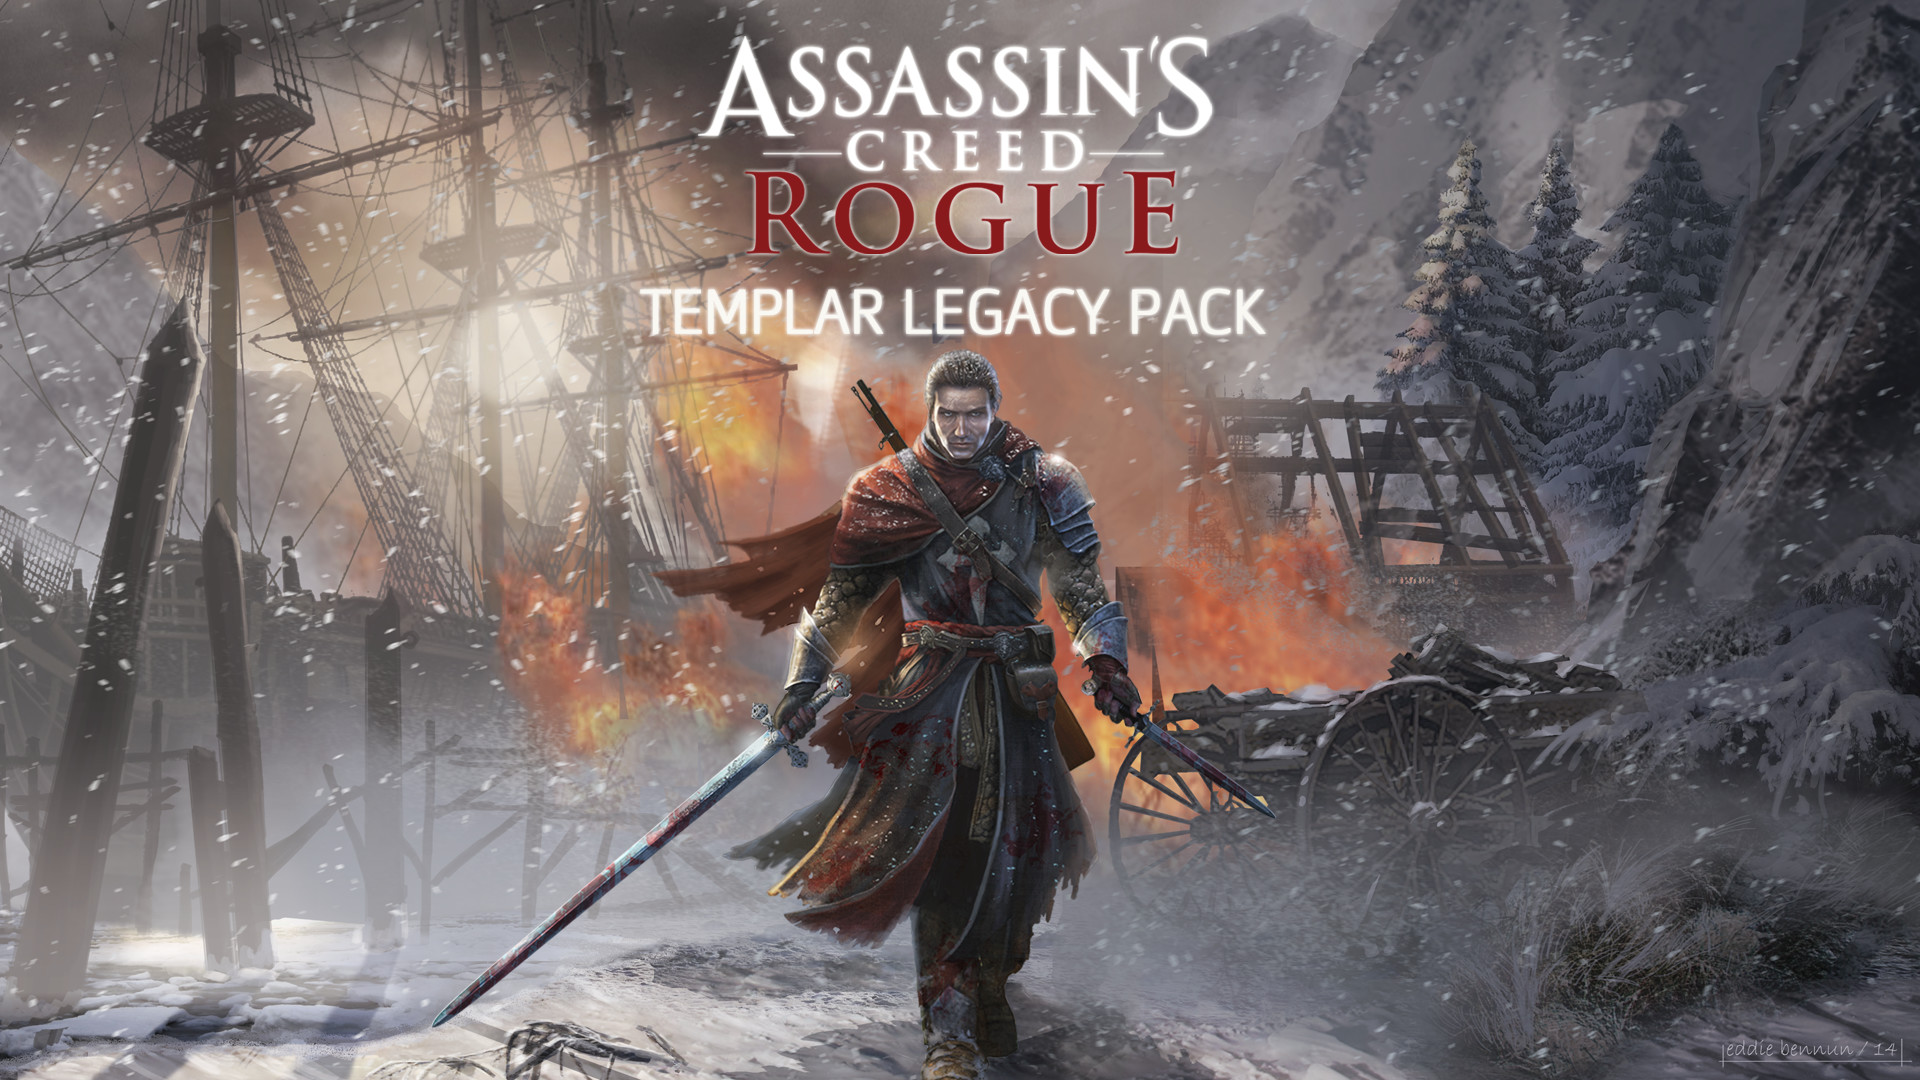 Assassin S Creed Rogue Templar Legacy Pack On Steam